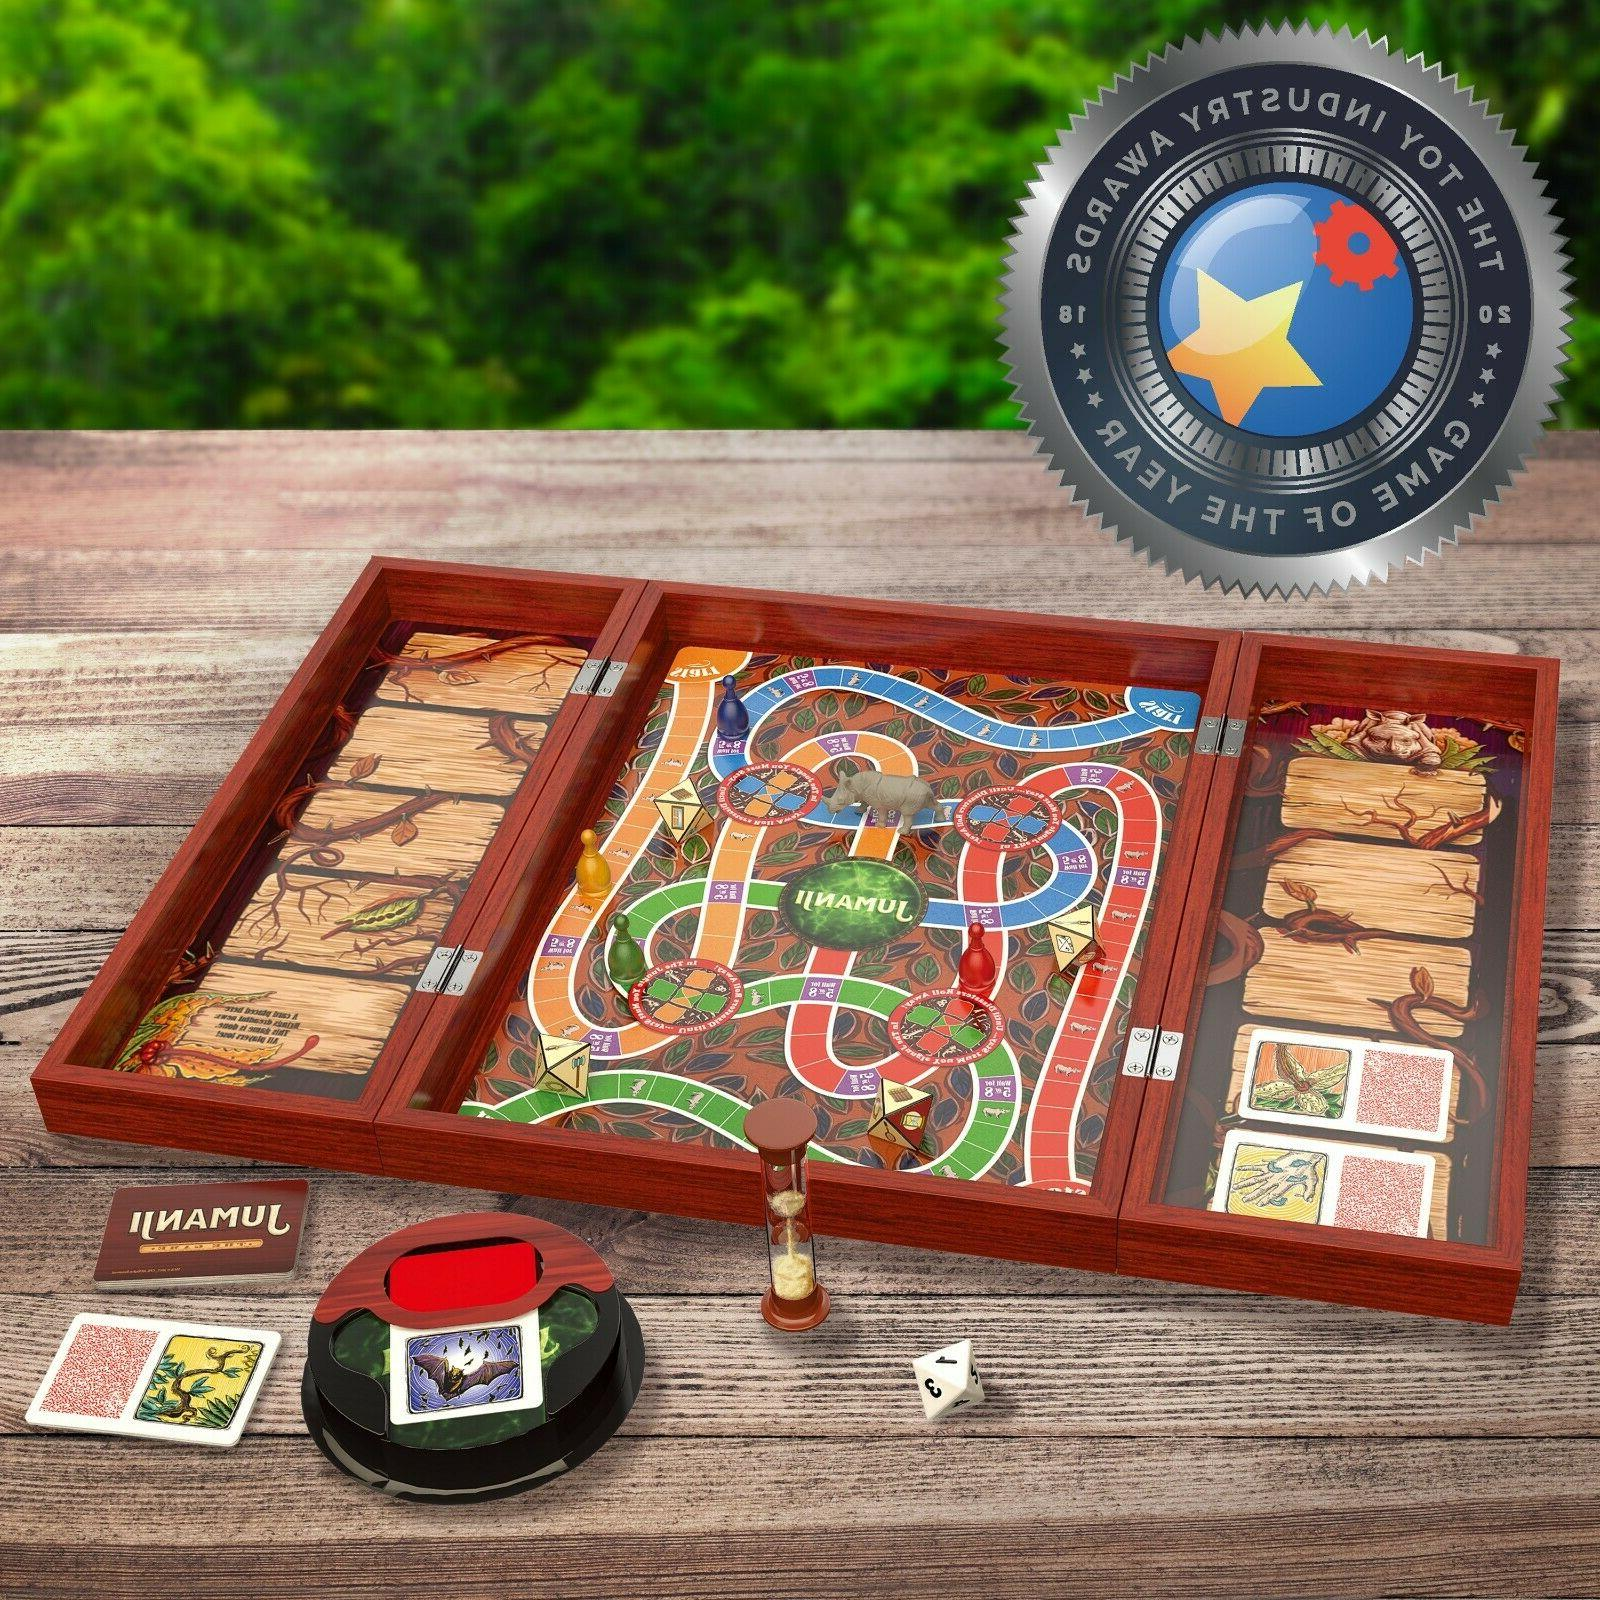 Jumanji Real Wooden Box Puzzles Fun Family